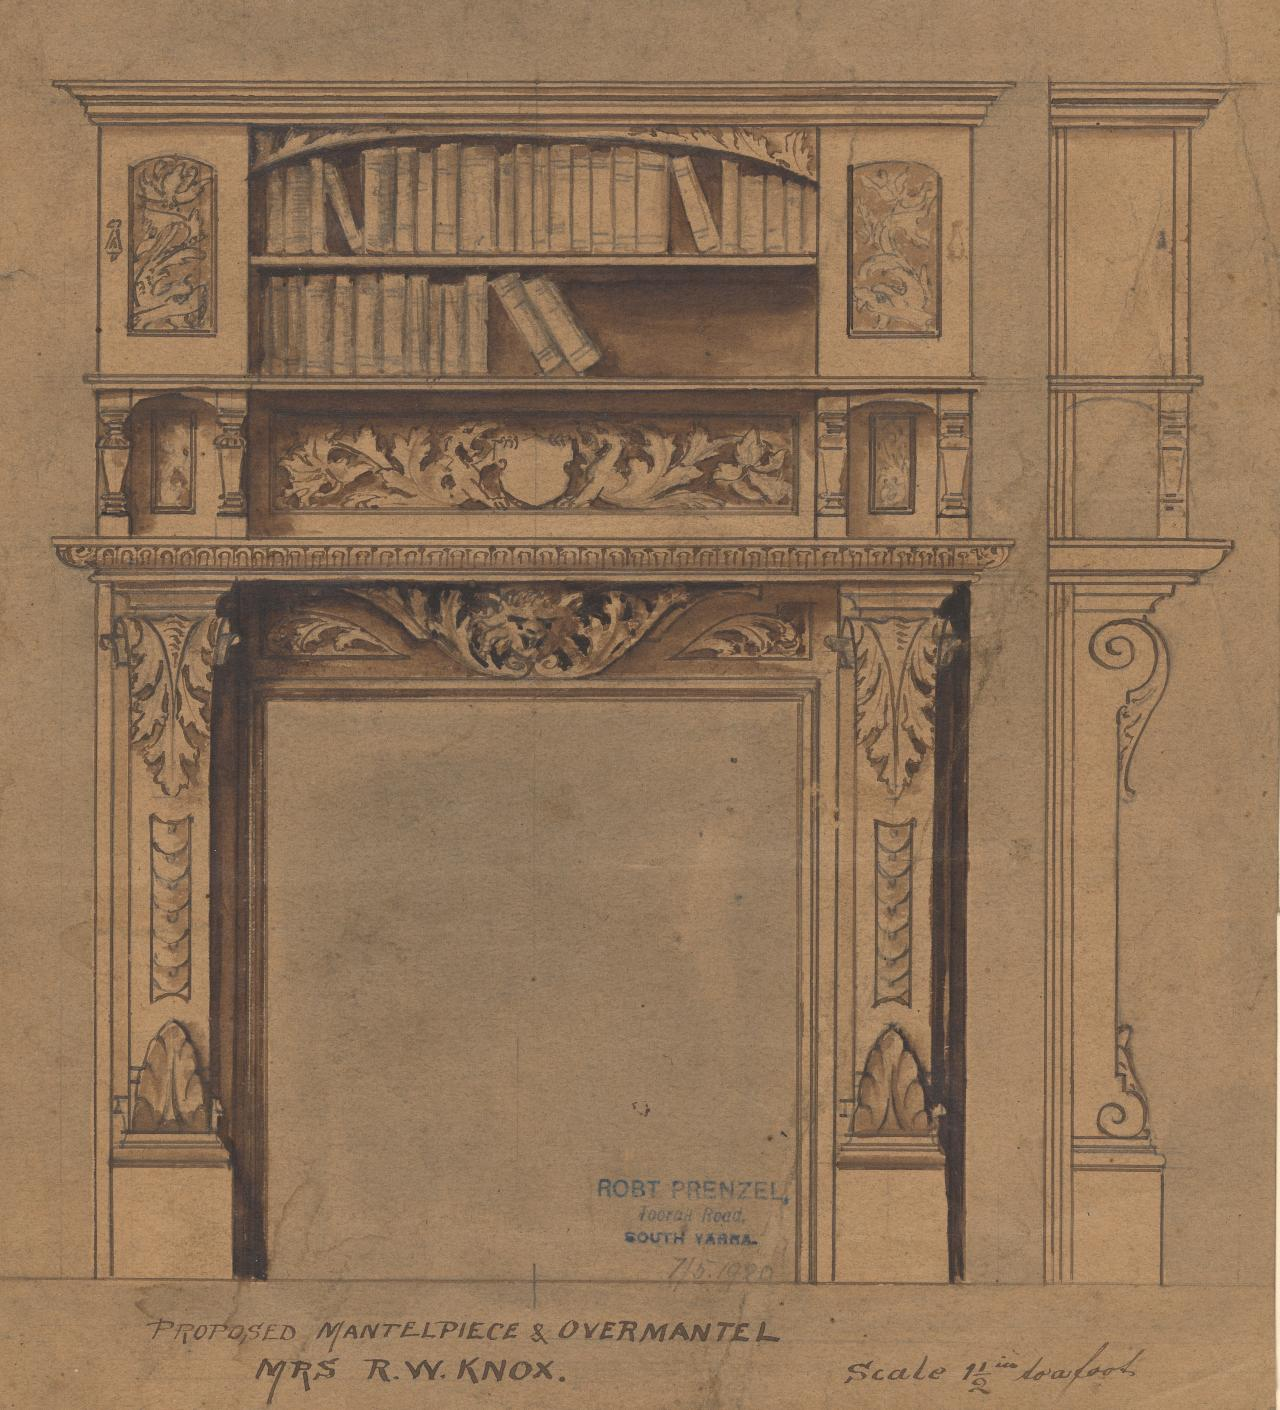 Proposed mantelpiece and overmantel for Mrs R. W. Knox